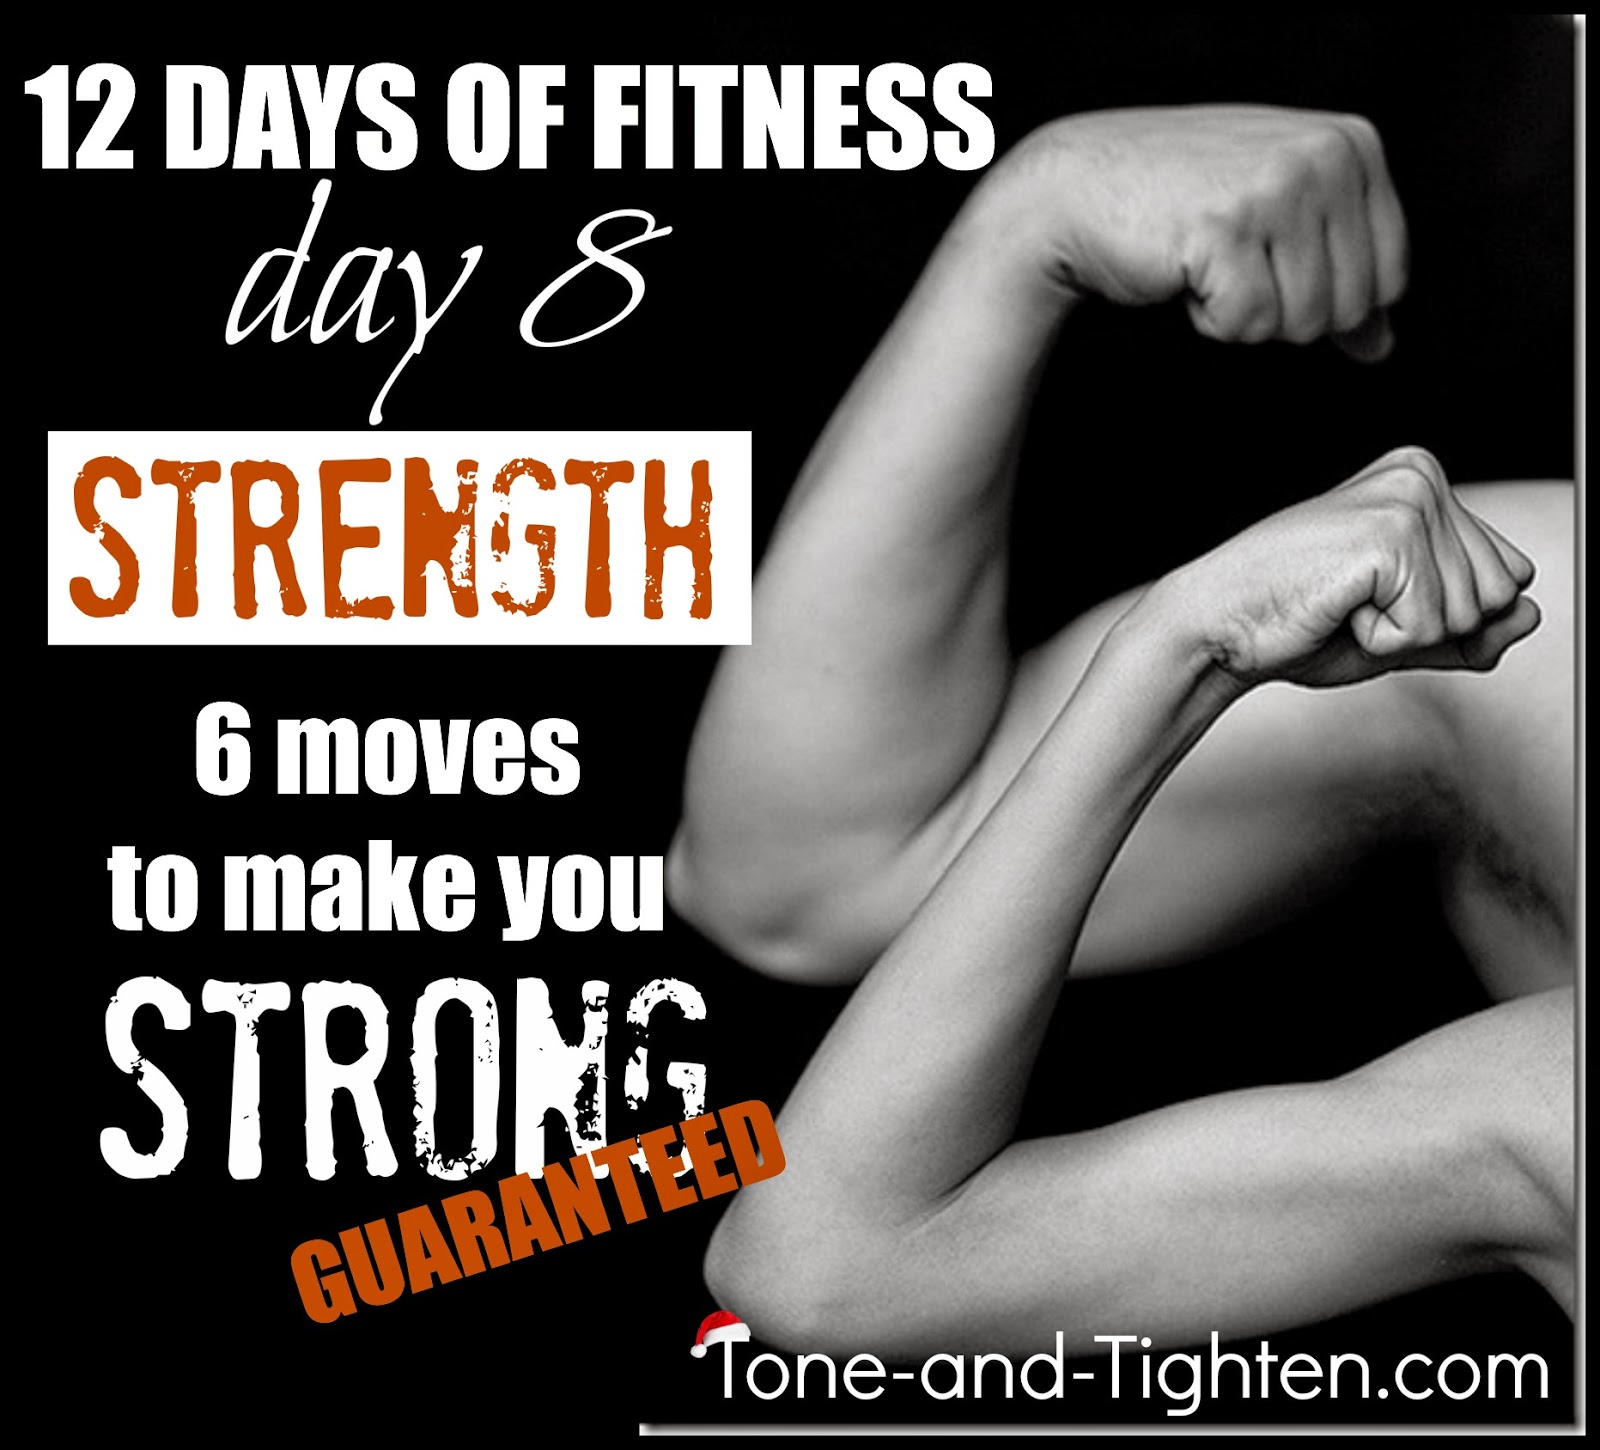 cardio strength tone and tighten part 6